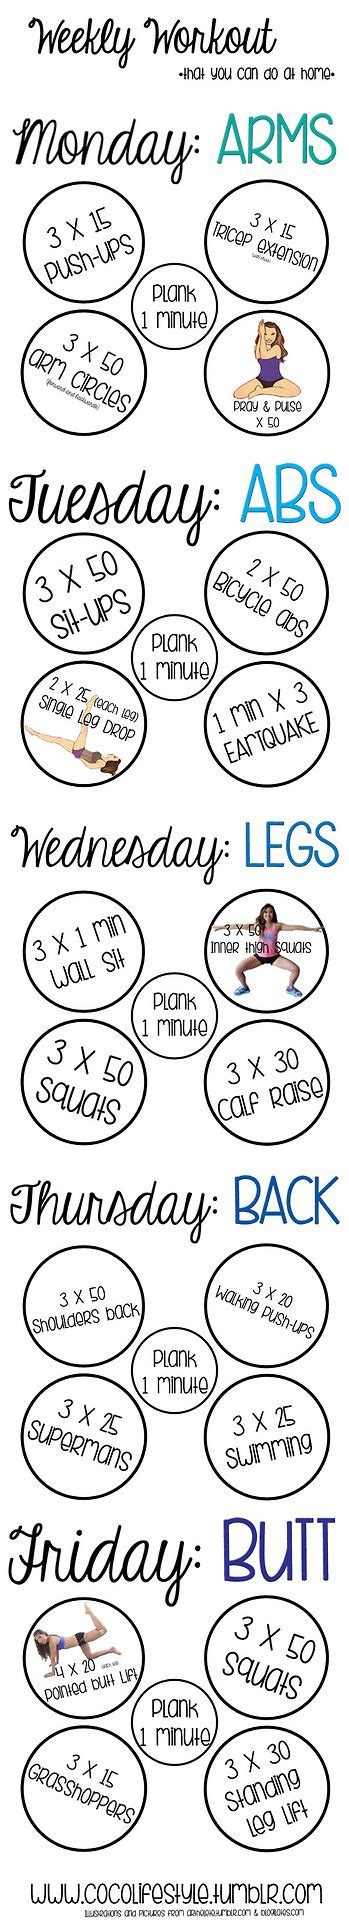 at home work out plan weekly workout you can do at home fitness pinterest